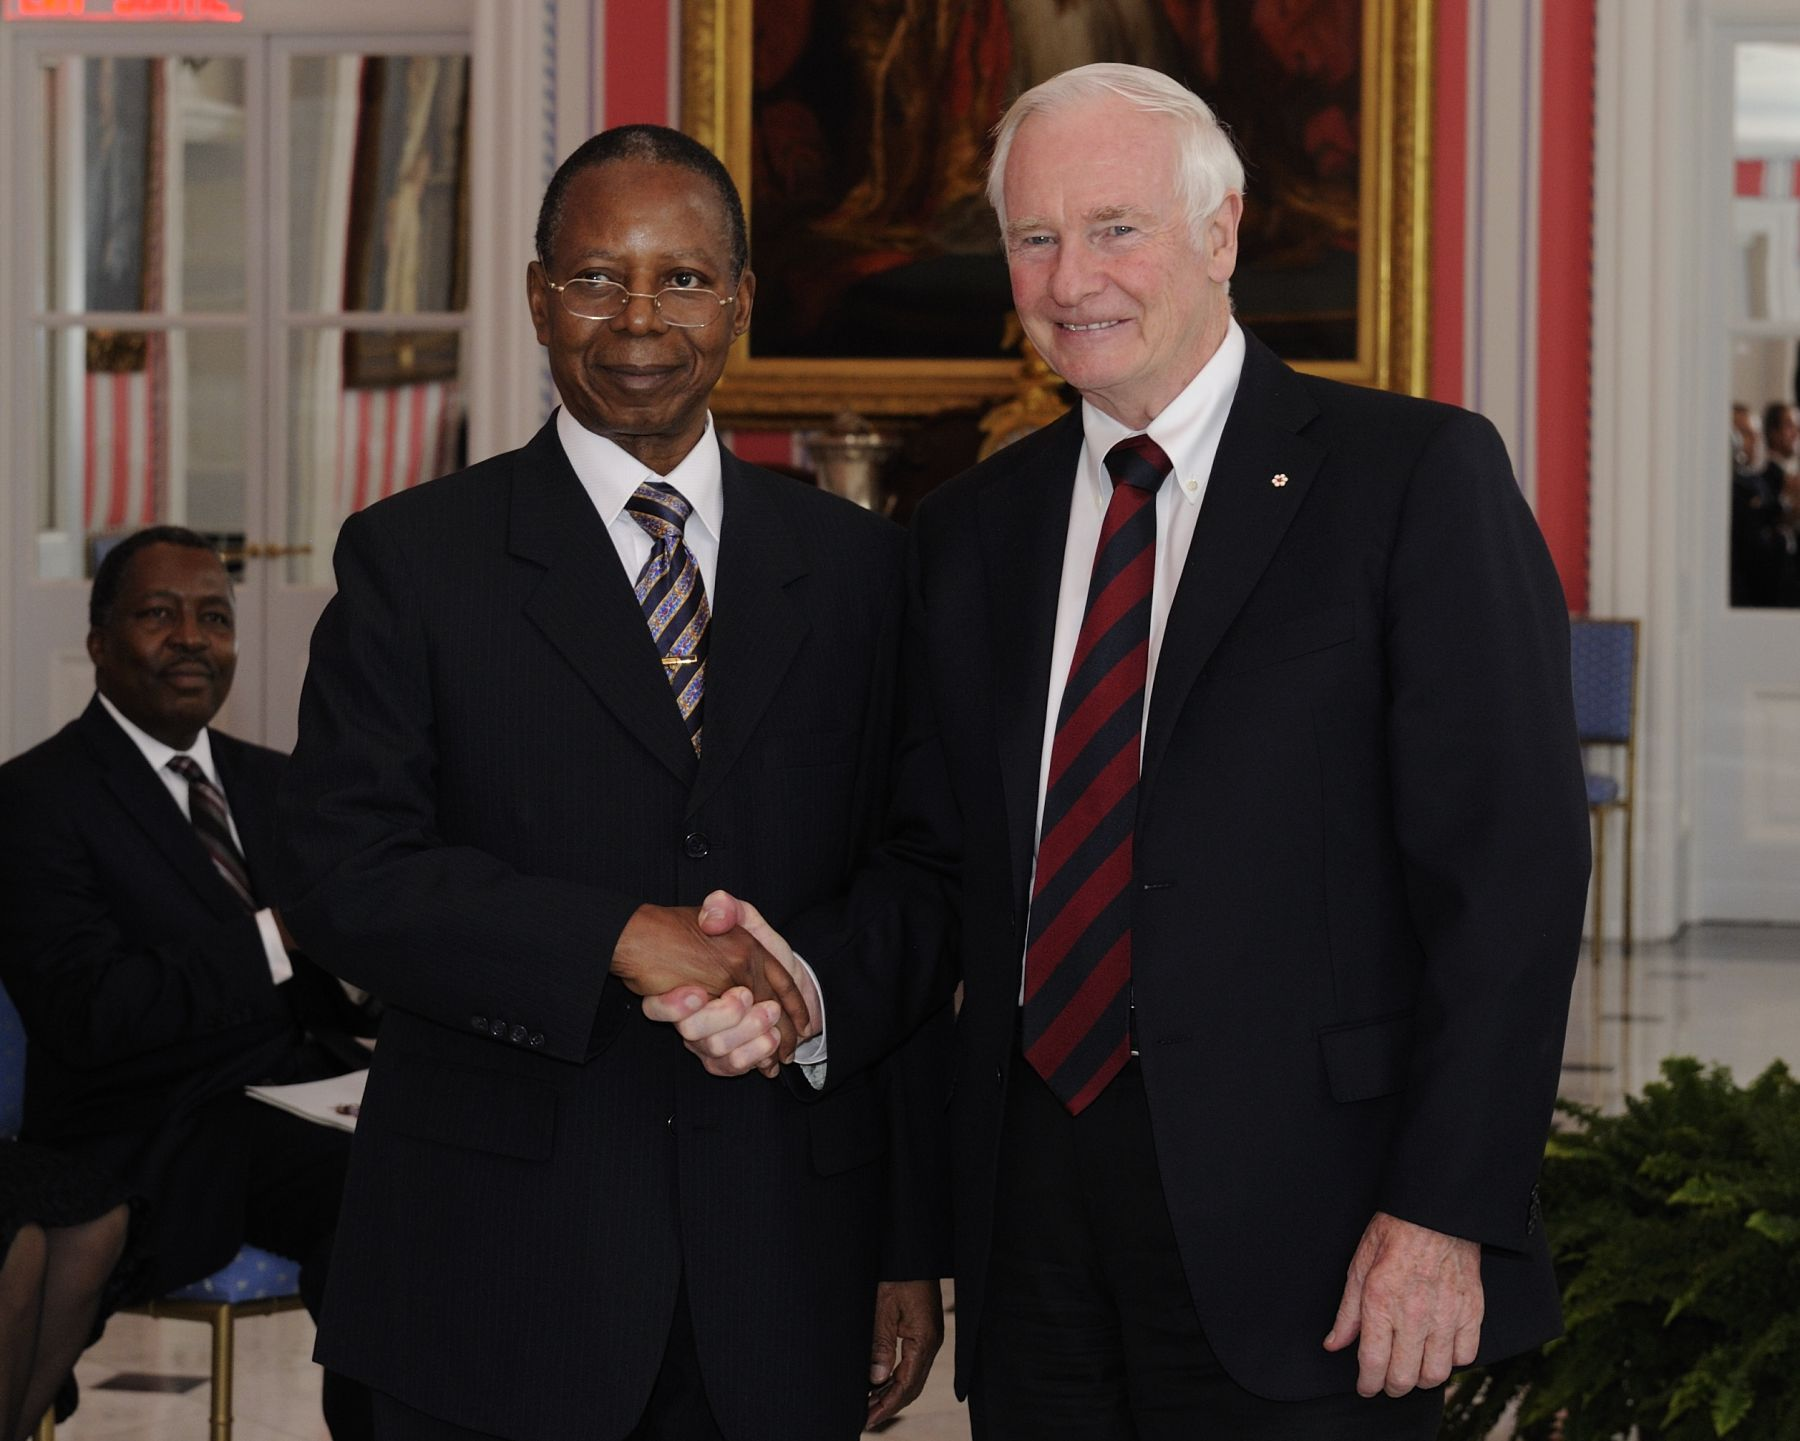 On December 1st, 2011, the presentation of credentials of three new heads of mission took place at Rideau Hall.